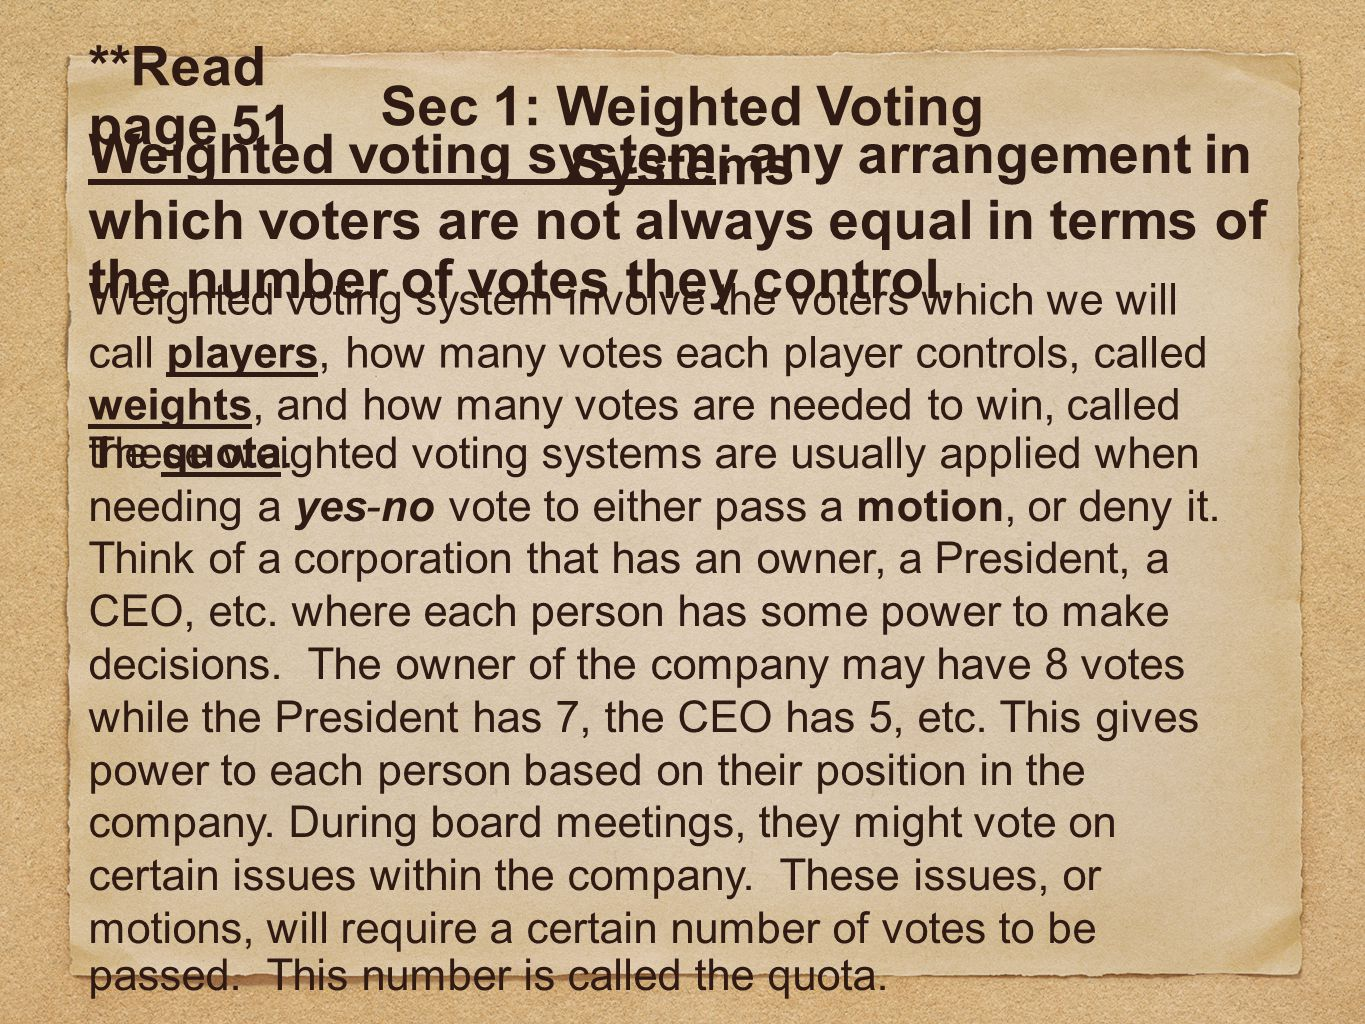 Sec 1: Weighted Voting Systems